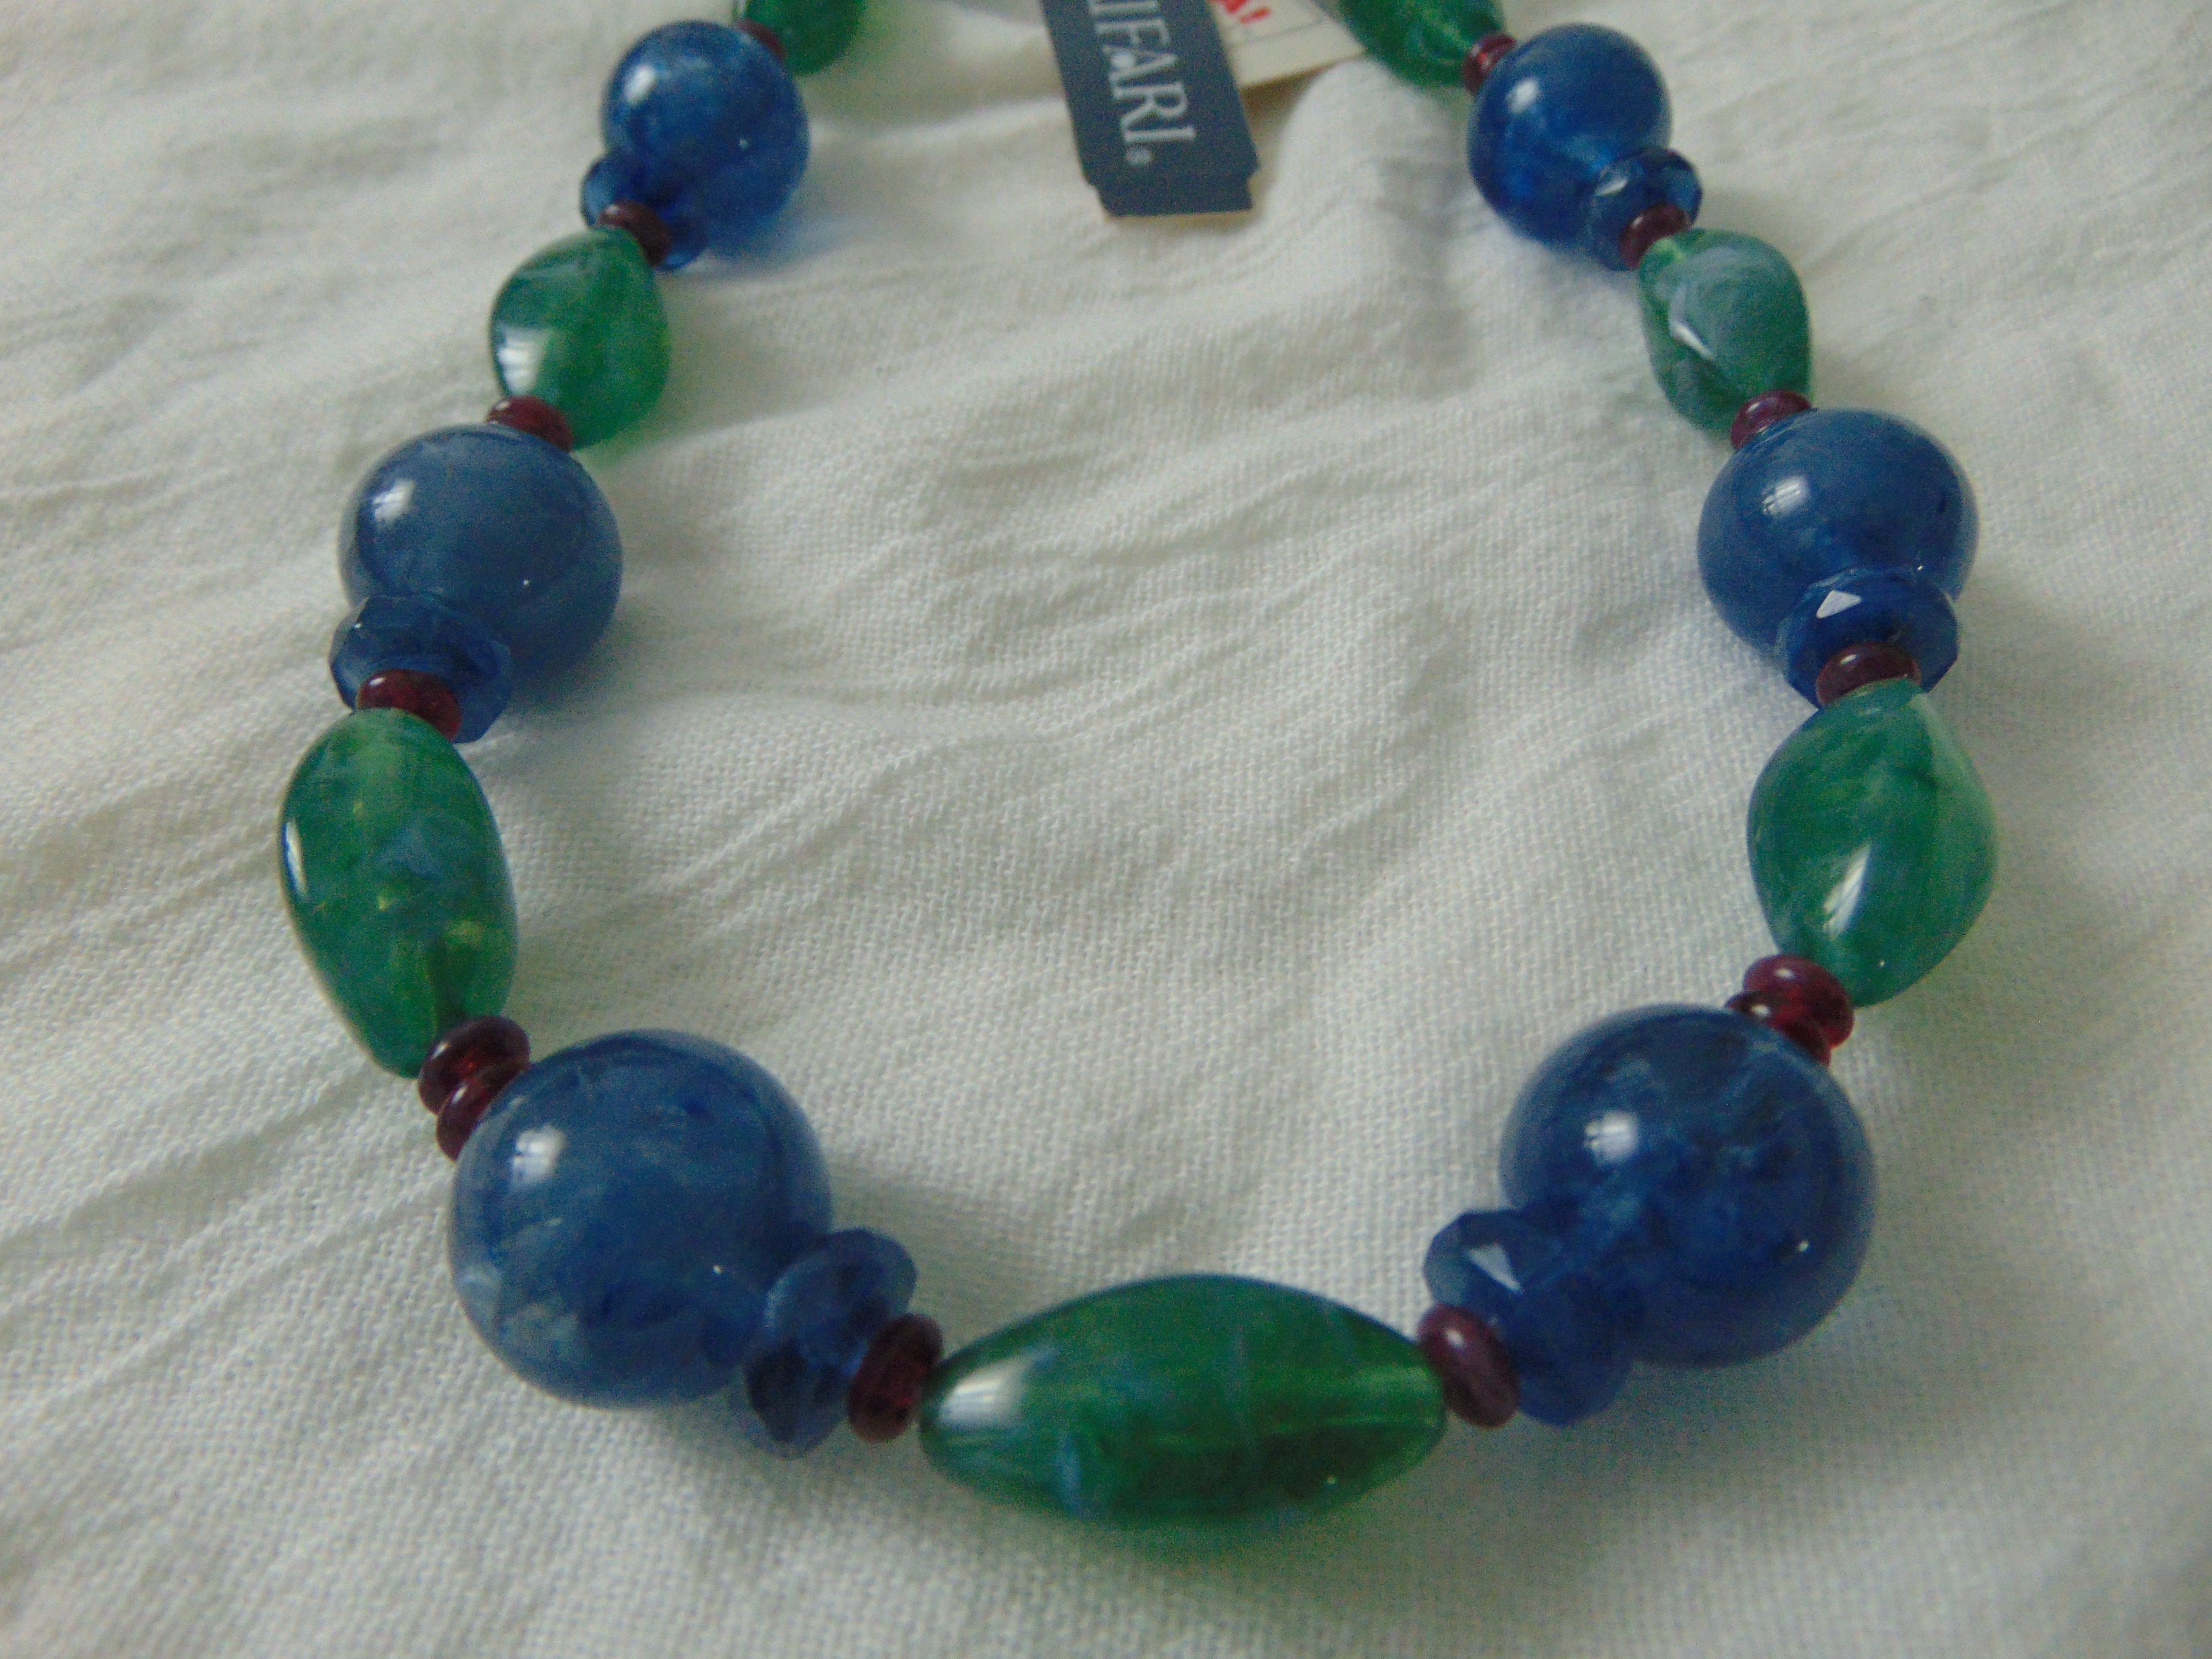 vintage Trifari signed blue green garnet marbleized lucite beads necklace